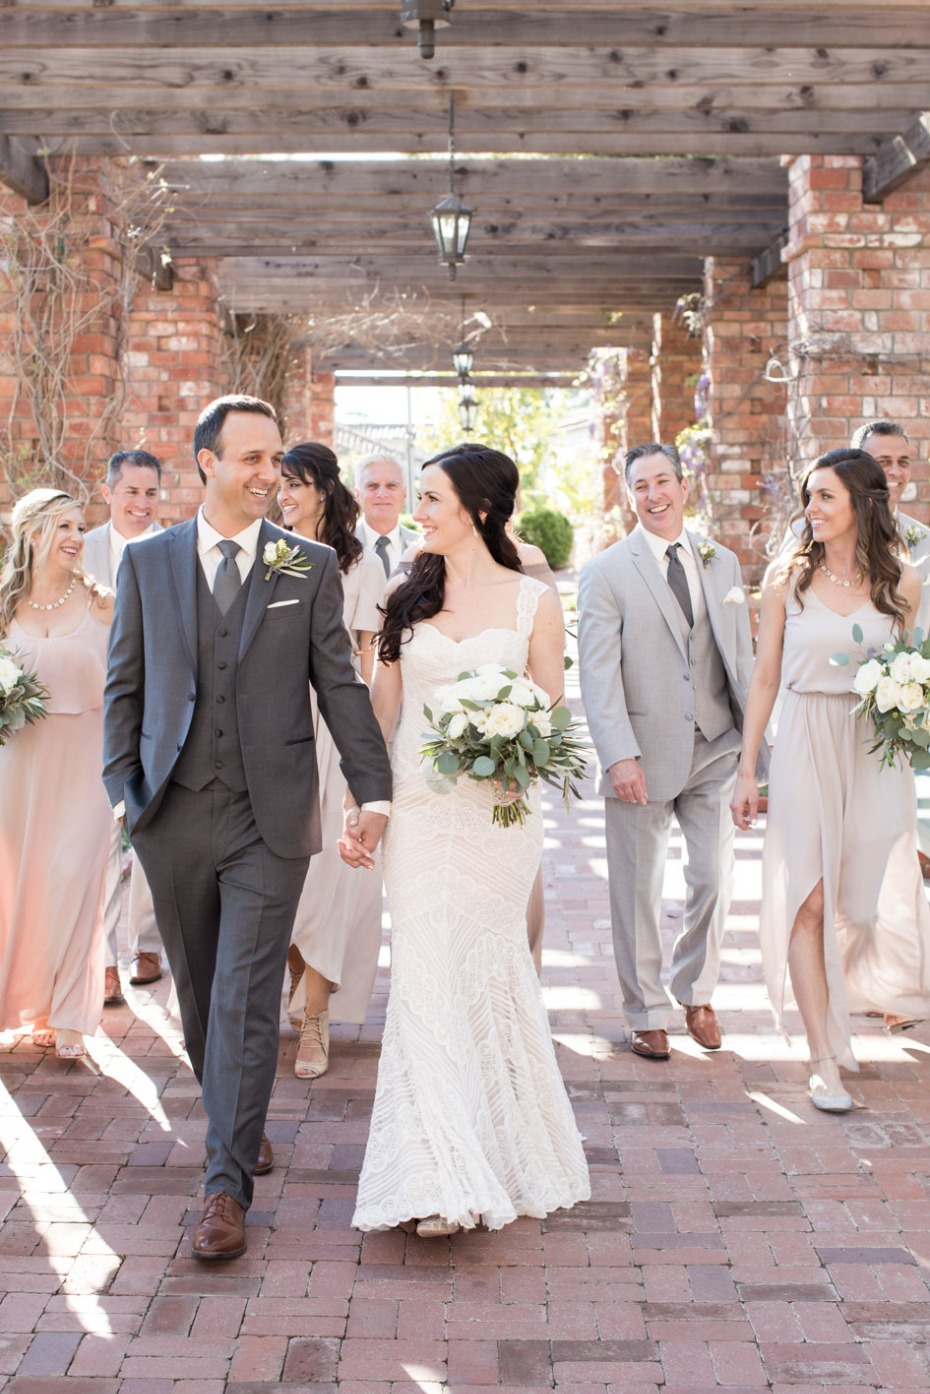 Chic wedding in Santa Barbara